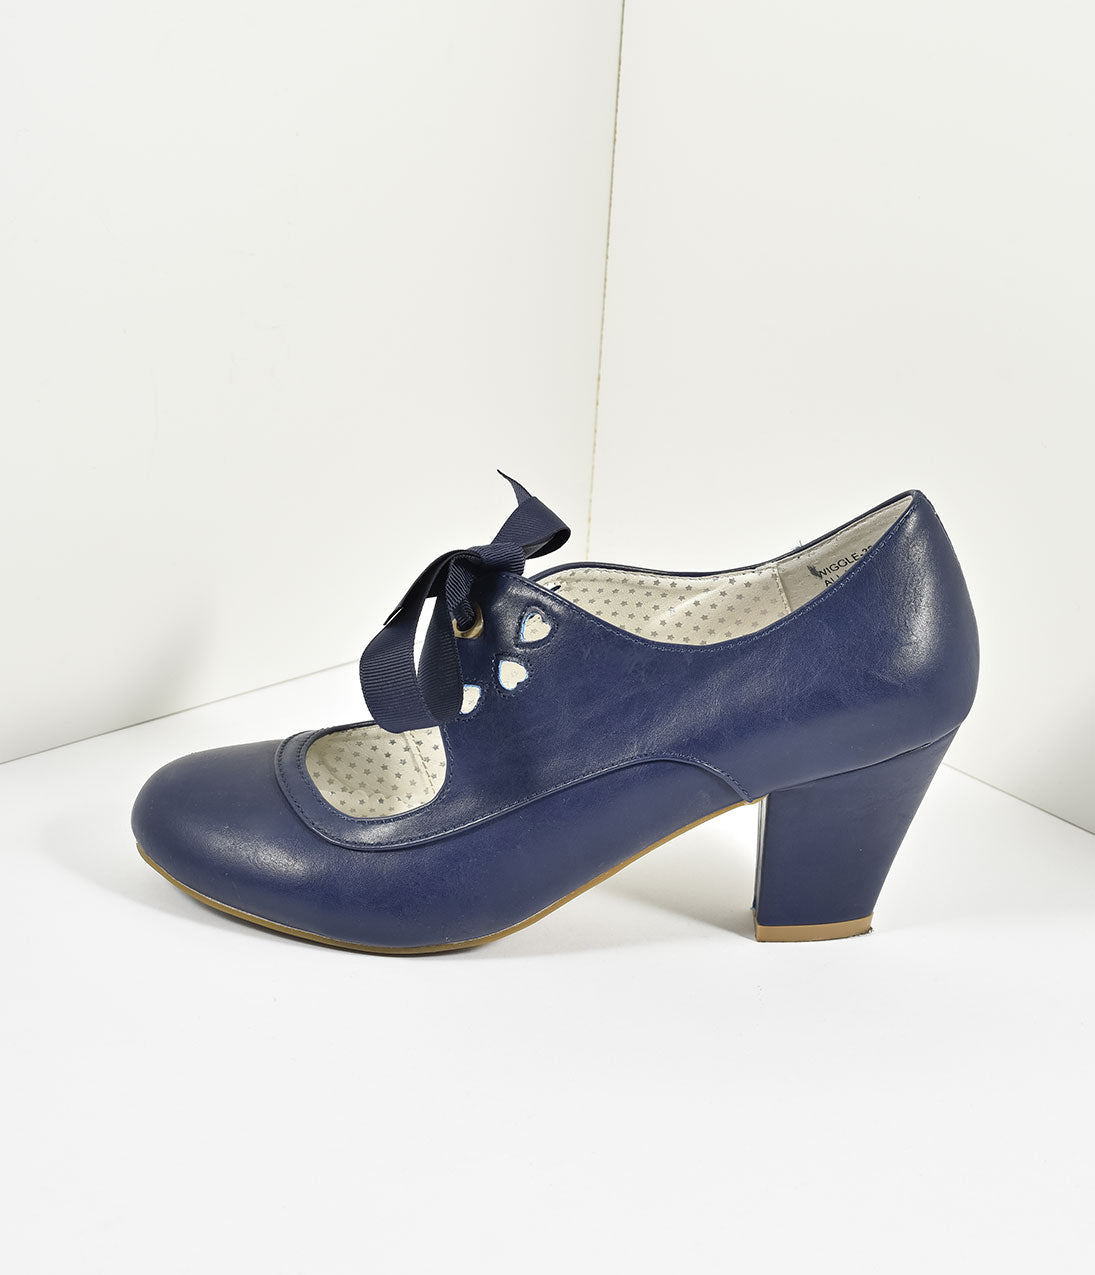 1950s Shoe Styles: Heels, Flats, Sandals, Saddles Shoes Vintage Style Navy Blue Leatherette Mary Jane Bow Wiggle Heels $58.00 AT vintagedancer.com